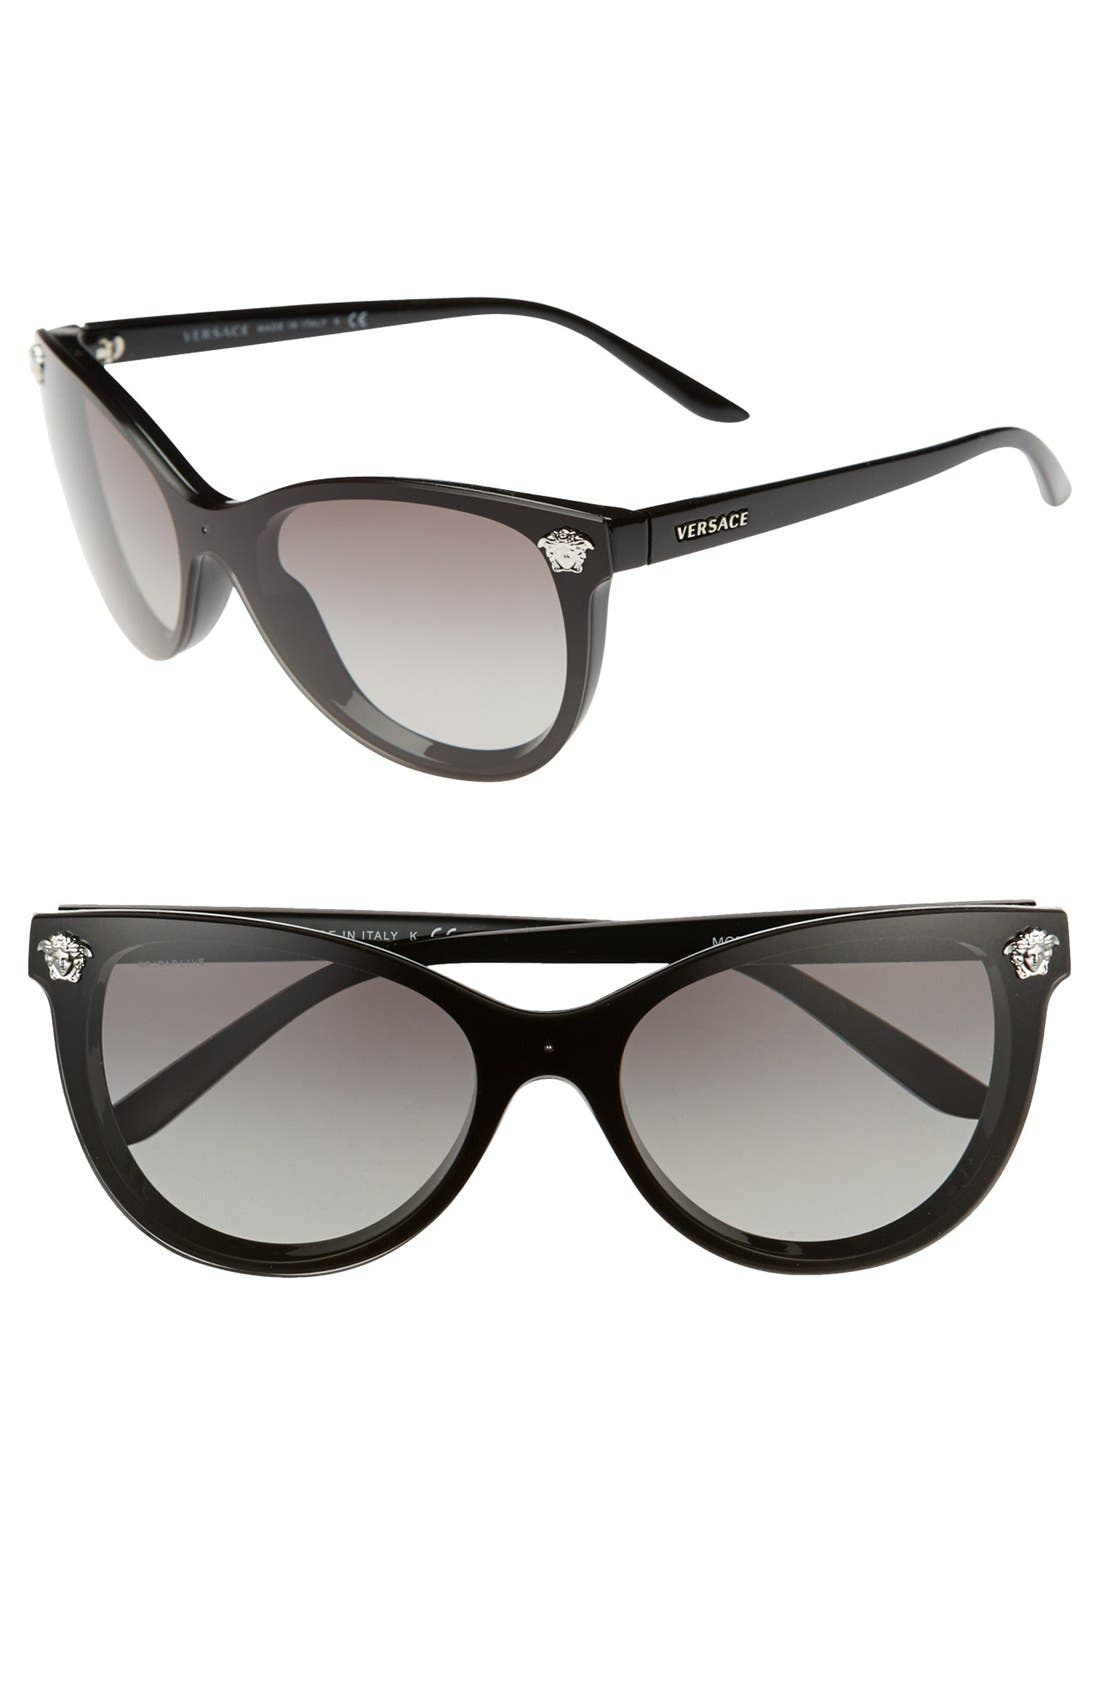 Alternate Image 1 Selected - Versace 'Rock Icons' 57mm Cat Eye Sunglasses